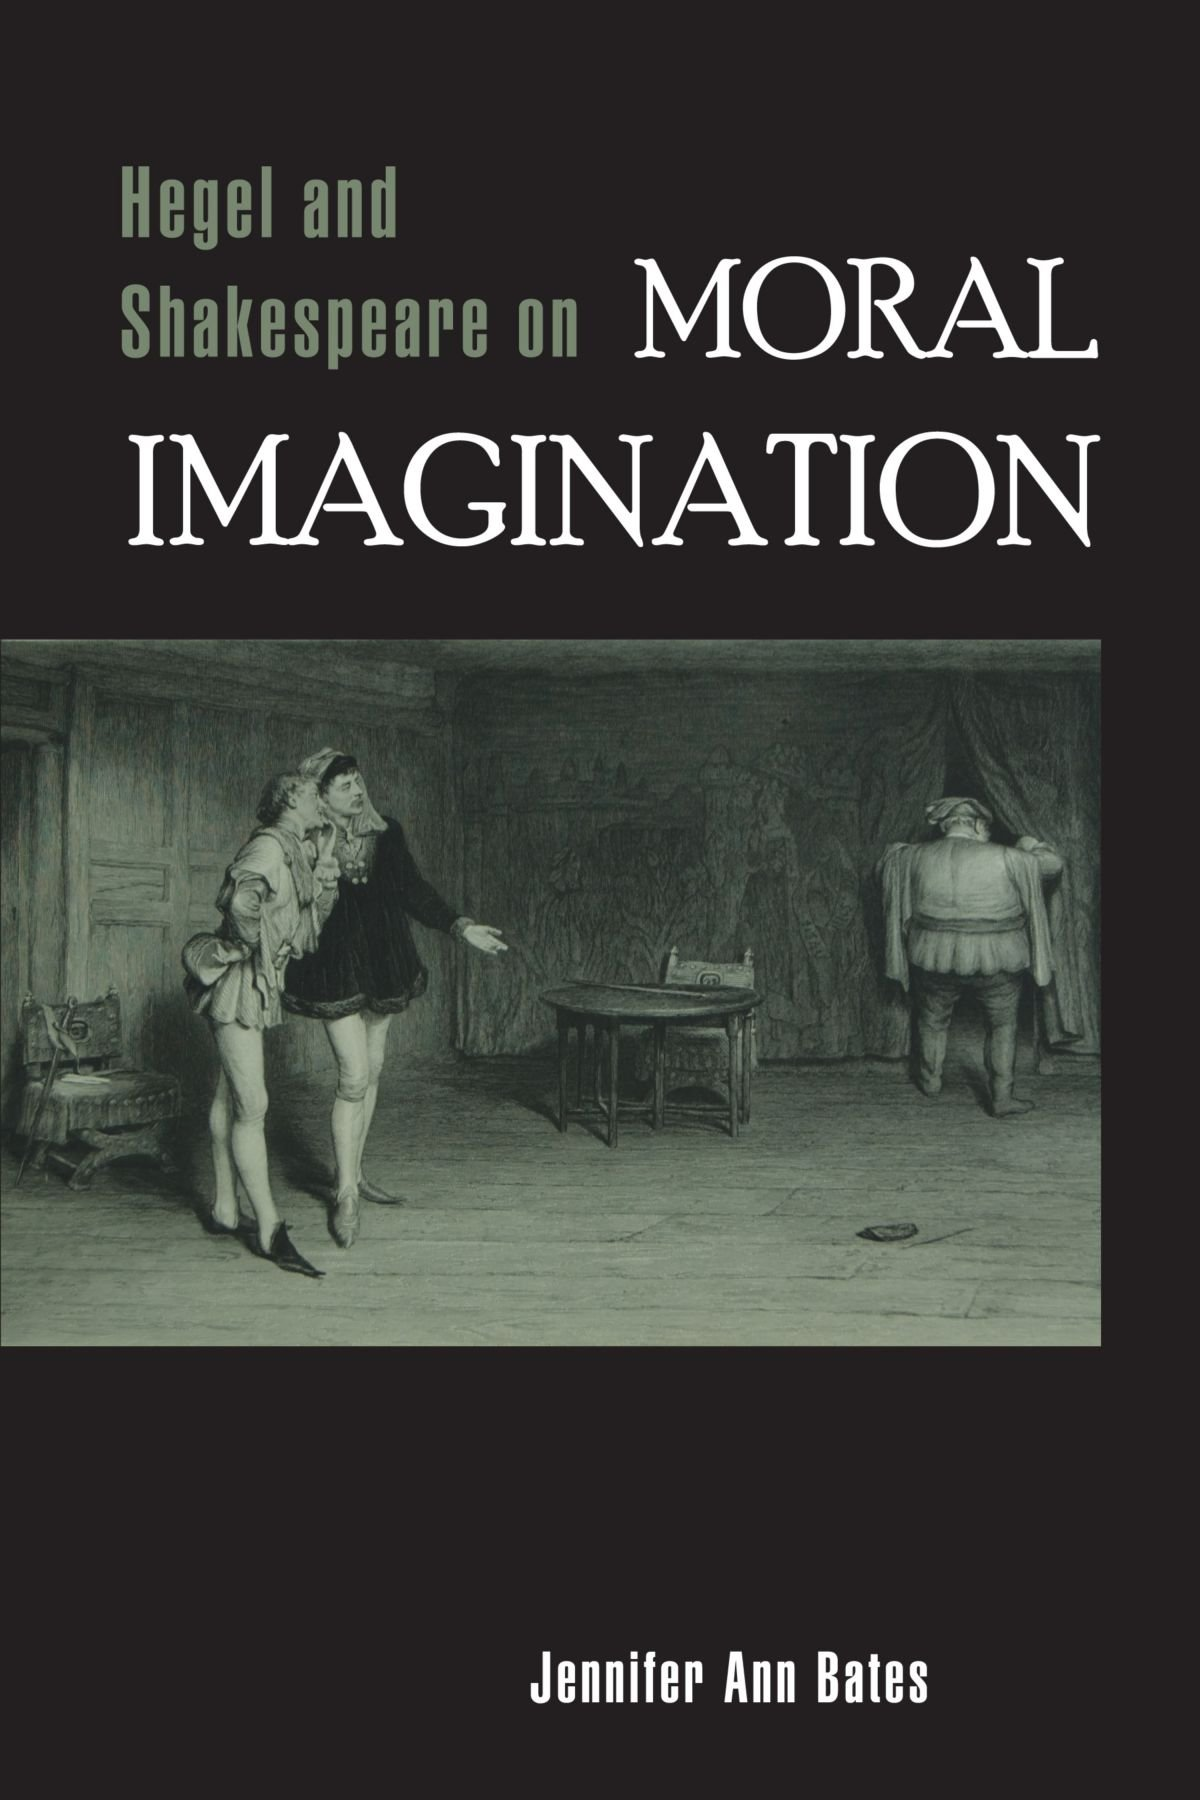 Hegel and Shakespeare on Moral Imagination PDF